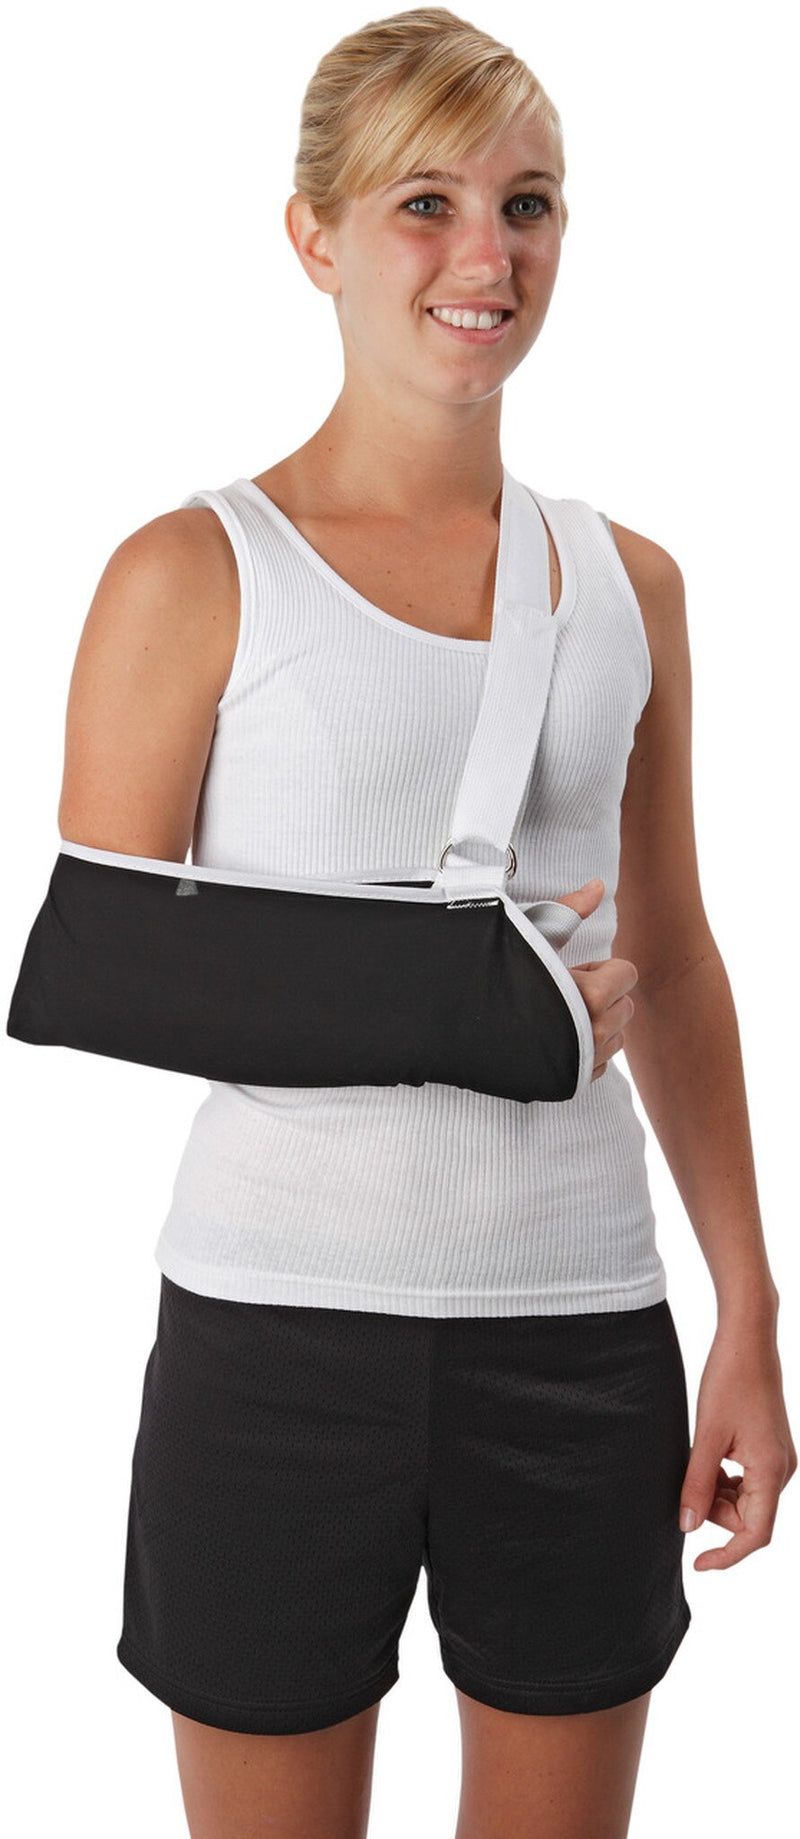 OSSUR Premium Contact Closure Arm Sling with Comfort Pad and Slide Buckle Adjustment, Small